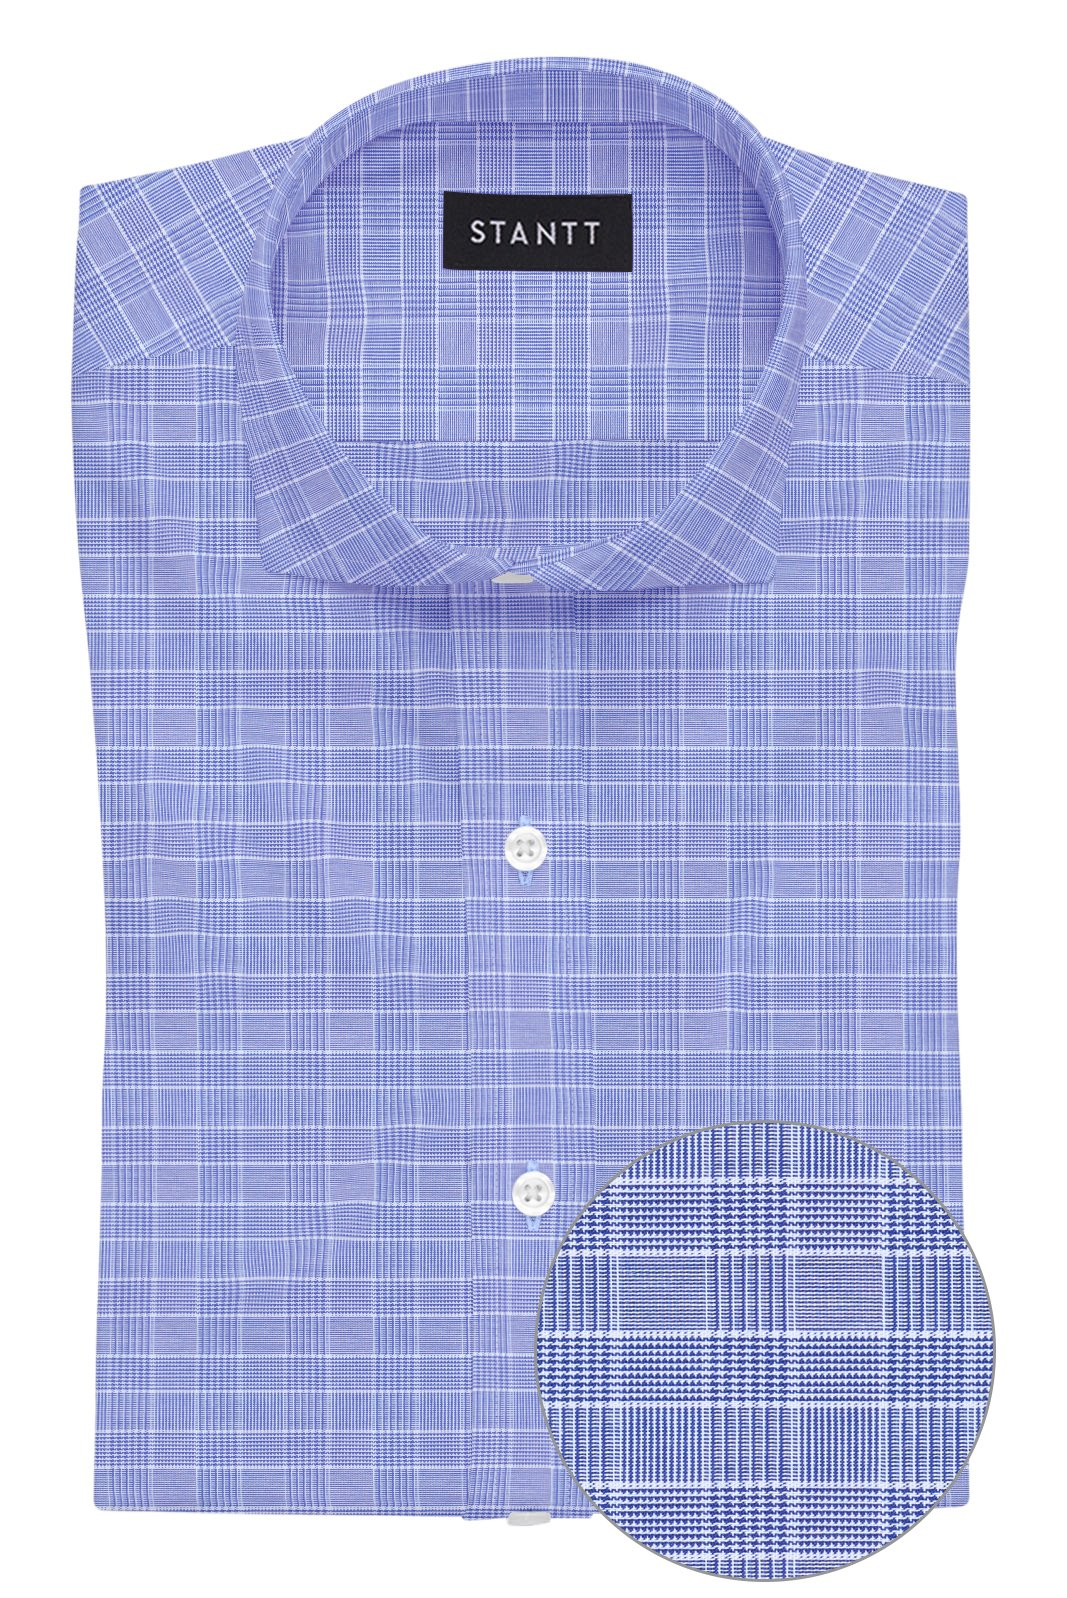 Navy Mini Prince of Wales Check: Cutaway Collar, French Cuff